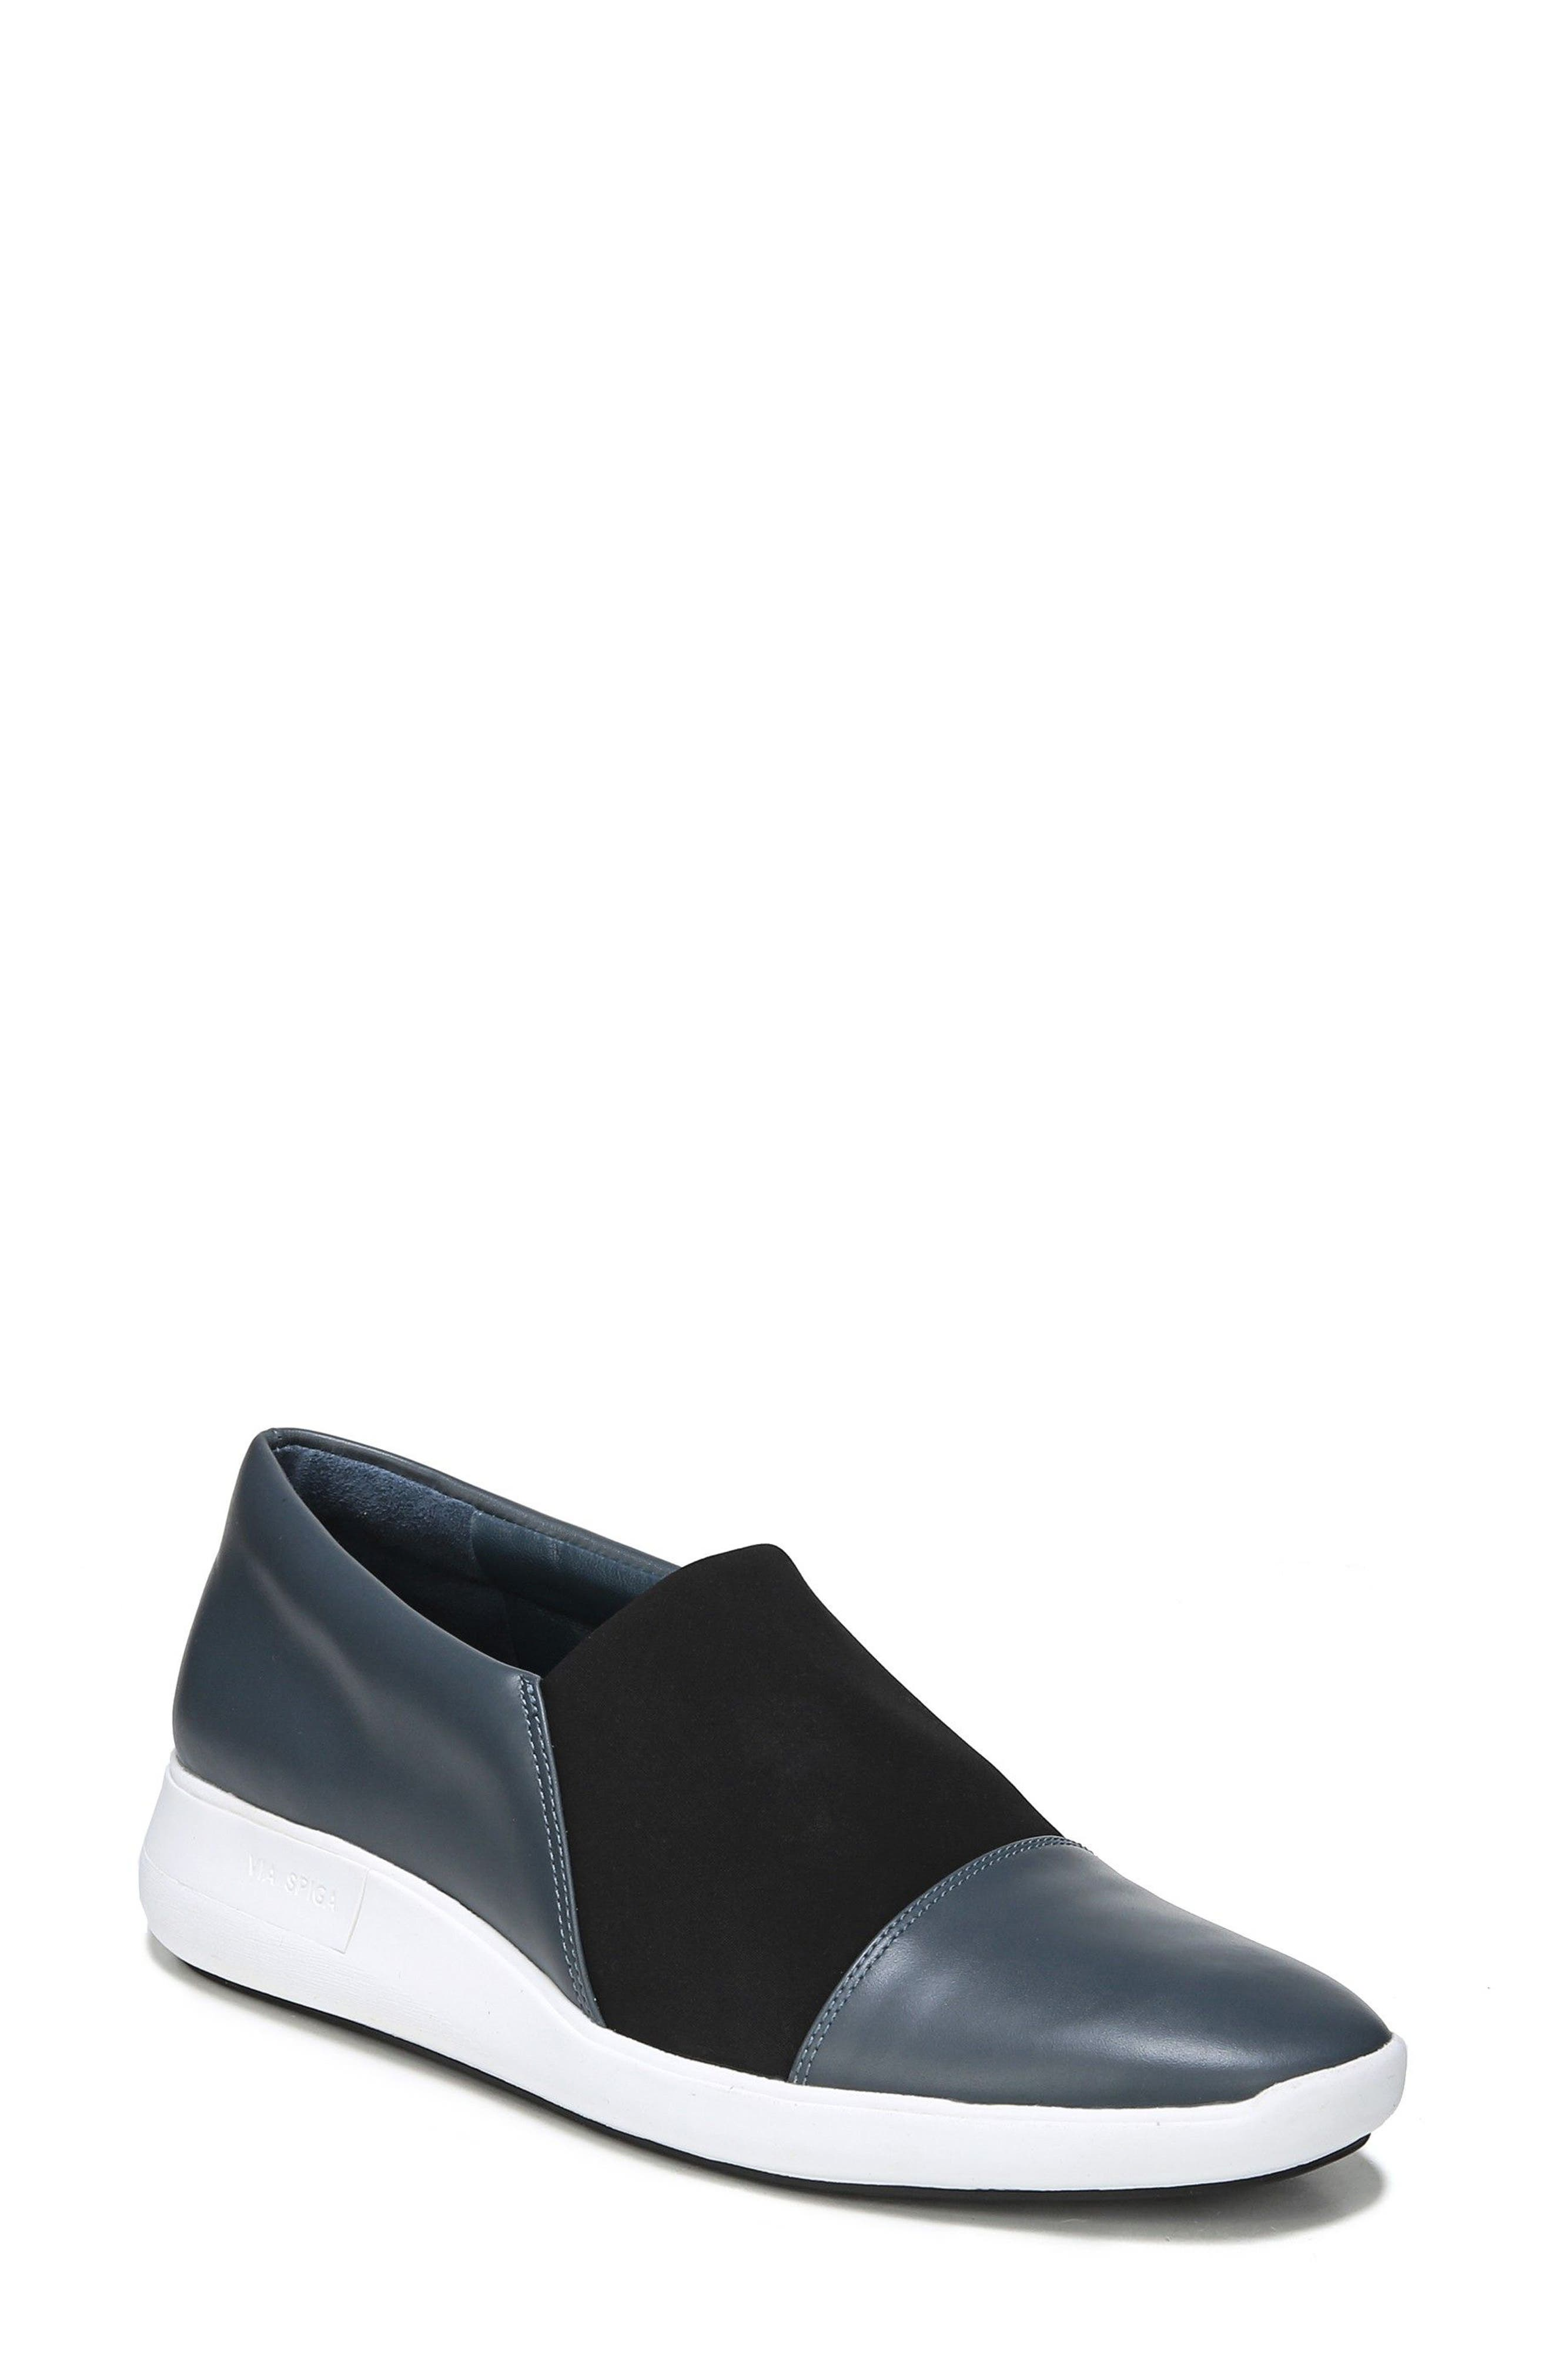 Morgan Slip-On Sneaker,                             Main thumbnail 1, color,                             Air Force Blue Leather